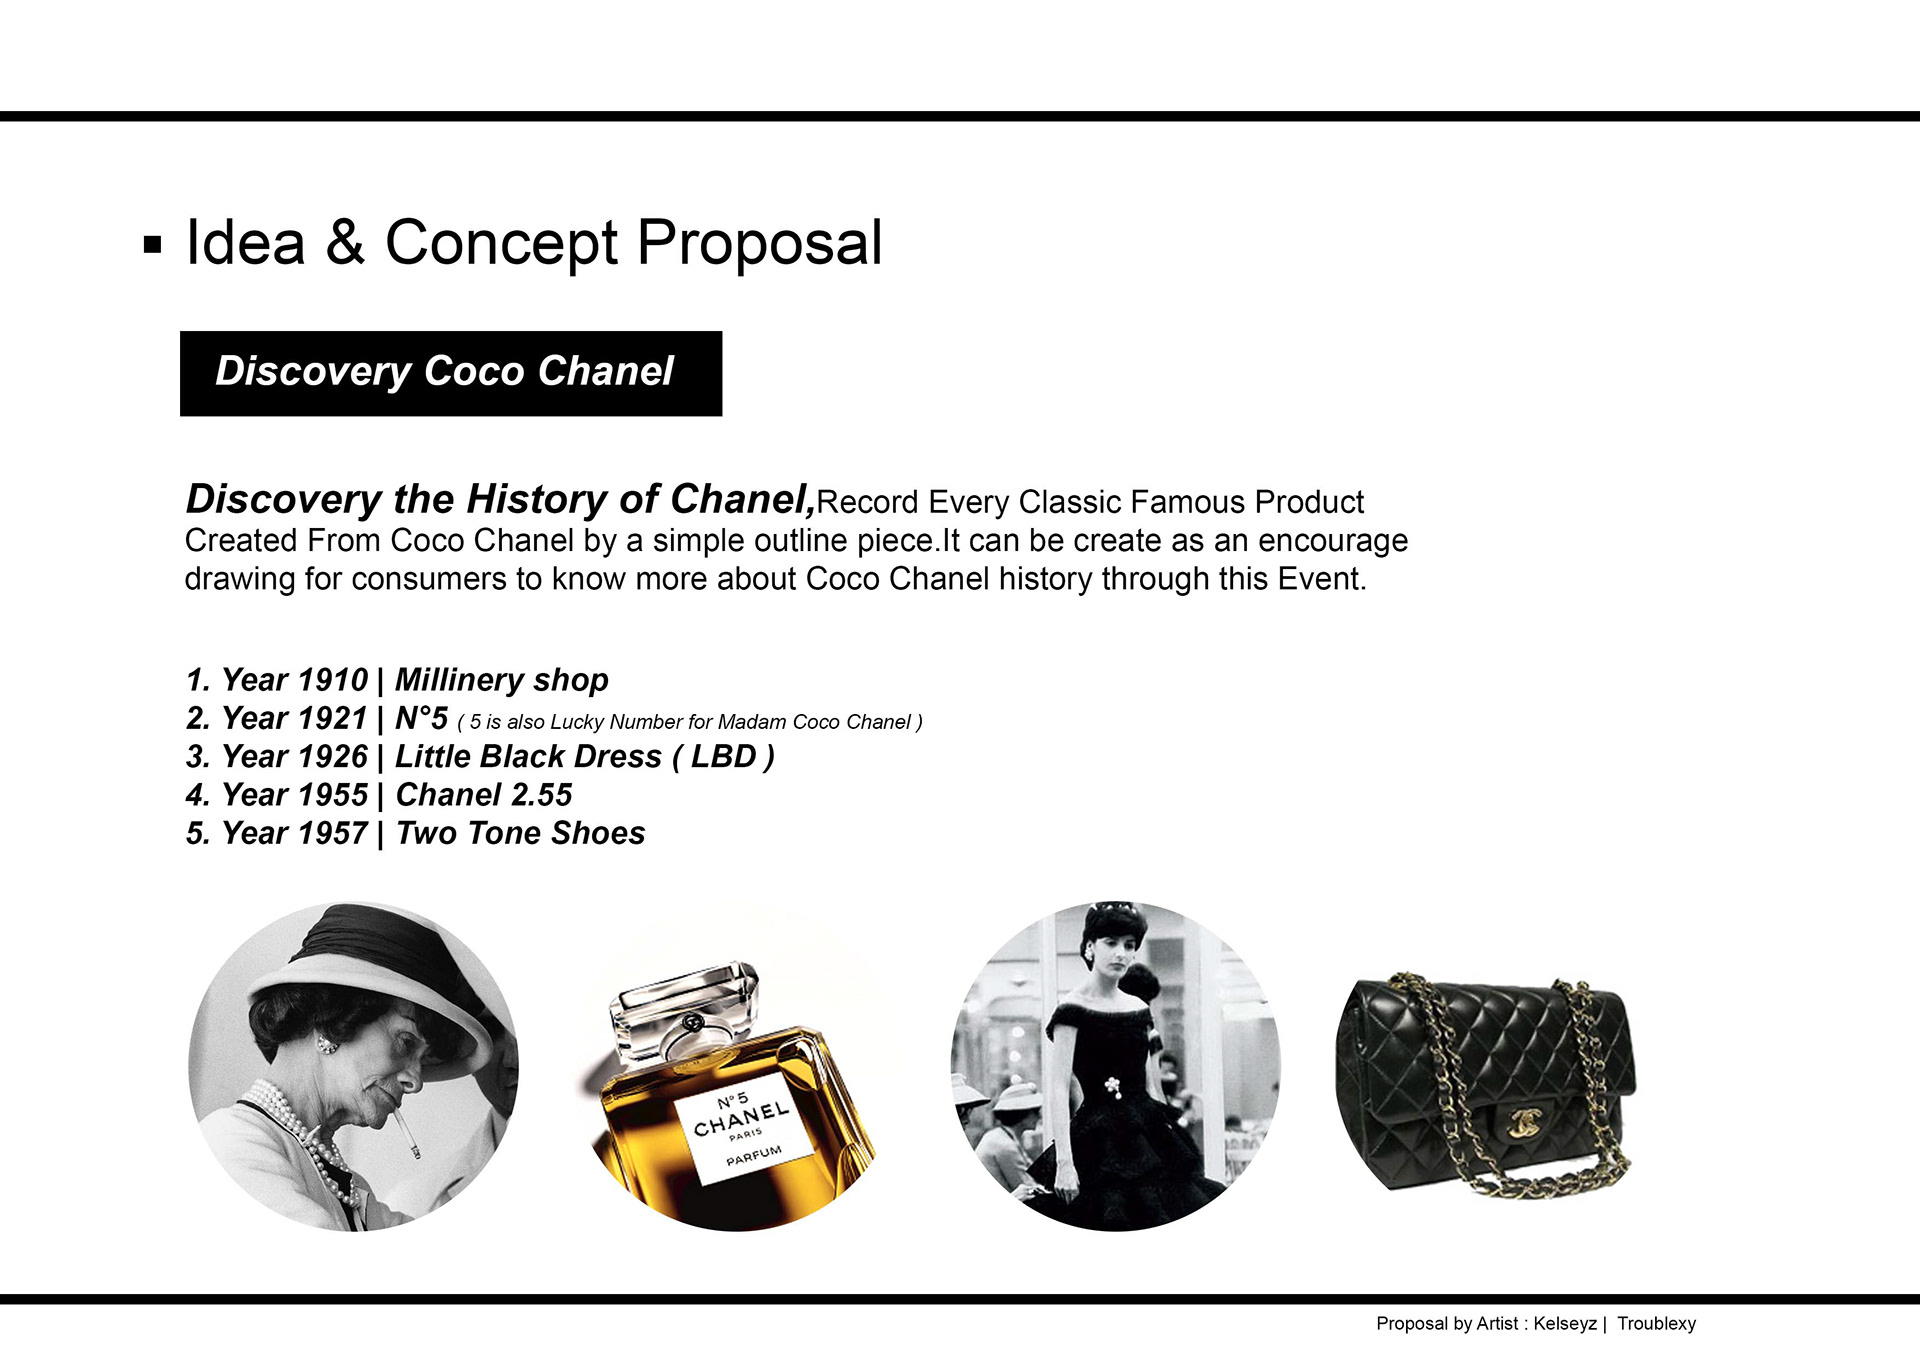 informative outline about coco chanel Breward (cultural history, univ of ­edinburgh the hidden consumer) ­offers a brief but comprehensive outline of the suit's evolution from its aesthetic conception to becoming a powerful icon of modern refinement donning the social, economic, and political symbols associated with the sourcing.